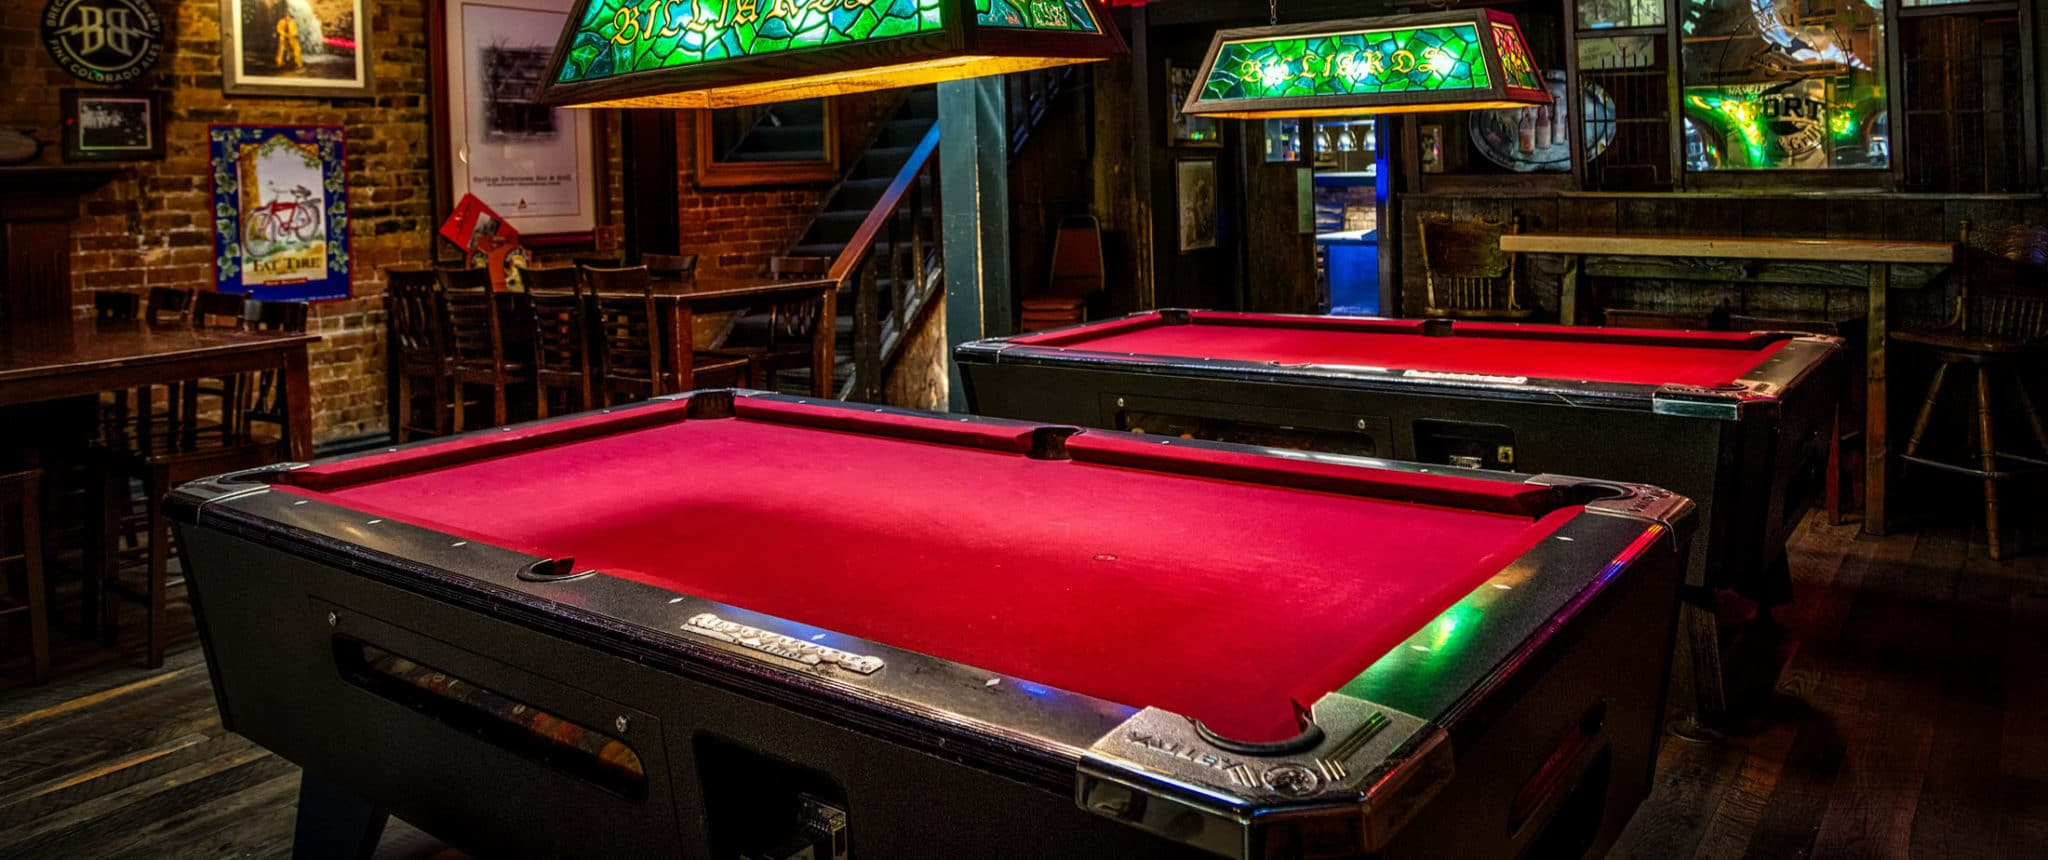 What Size Used Bar Pool Table Are You Looking For?